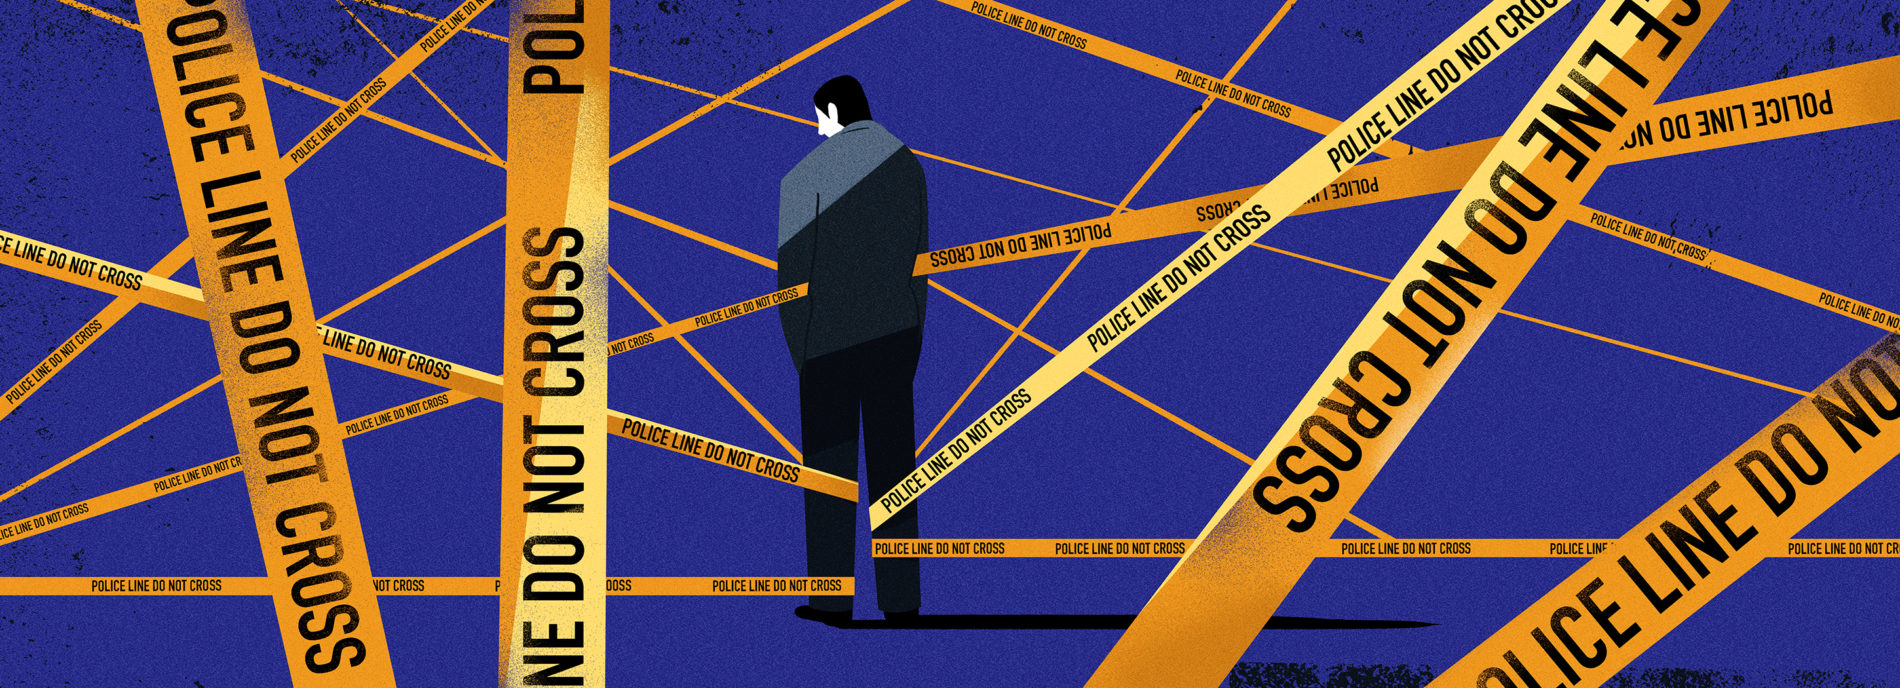 Illustration shows man penned in by Police line 'do not cross' yellow tape